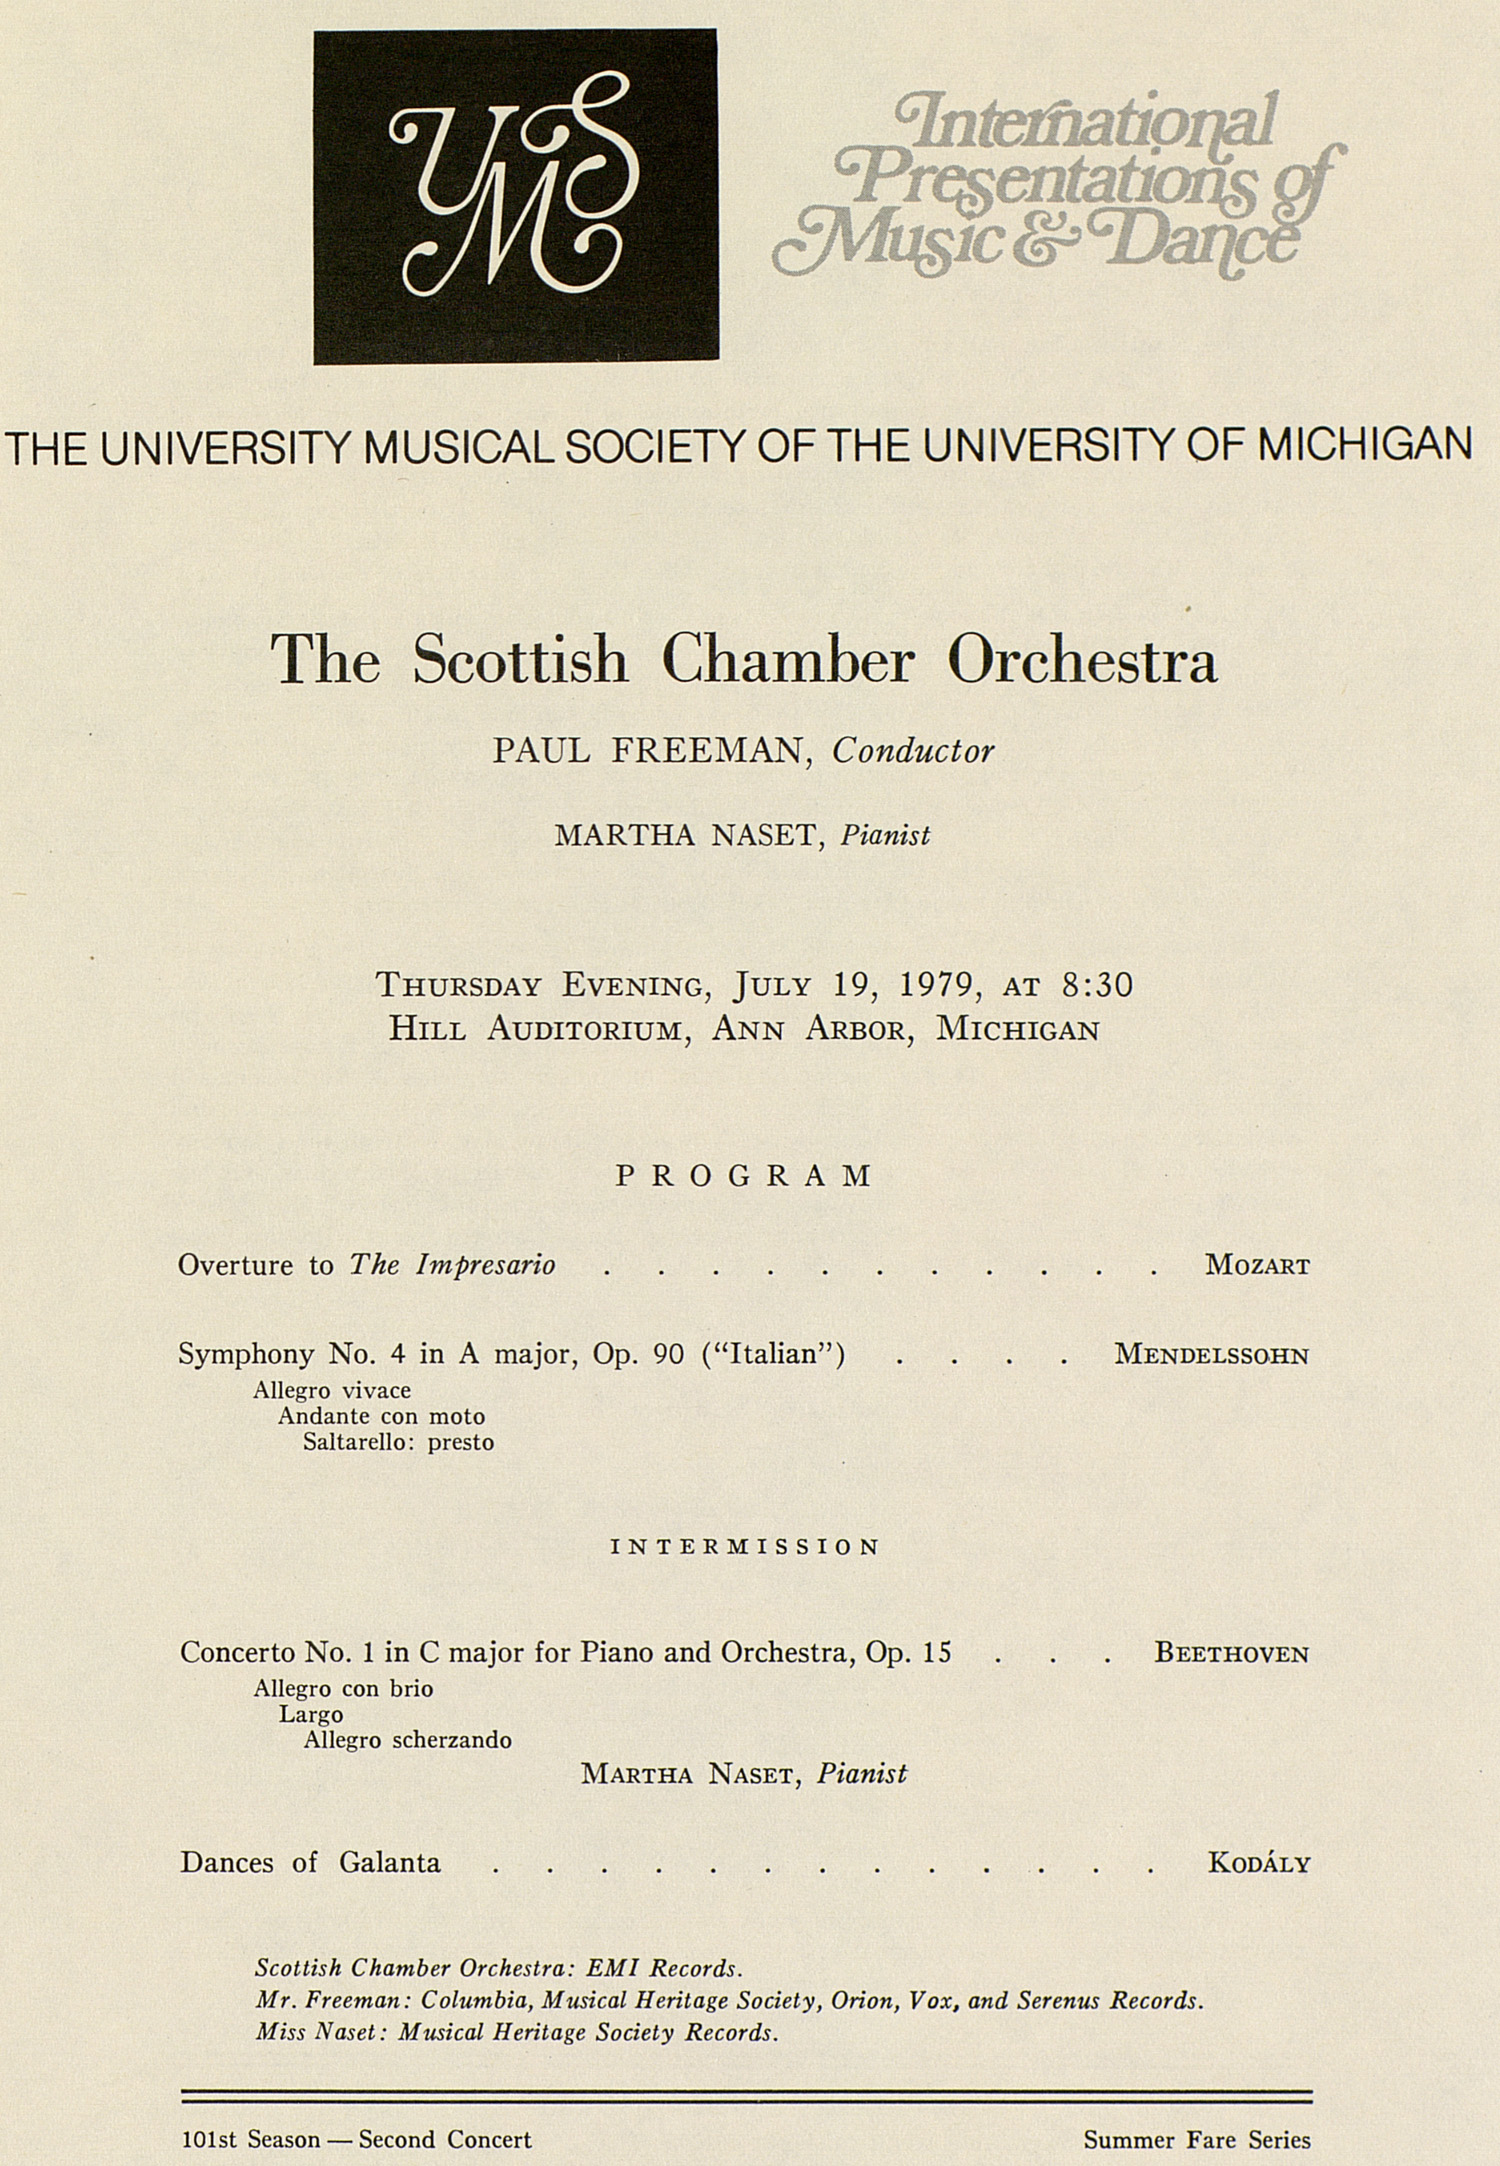 UMS Concert Program, July 19, 1979: International Presentations Of Music & Dance -- The Scottish Chamber Orchestra image